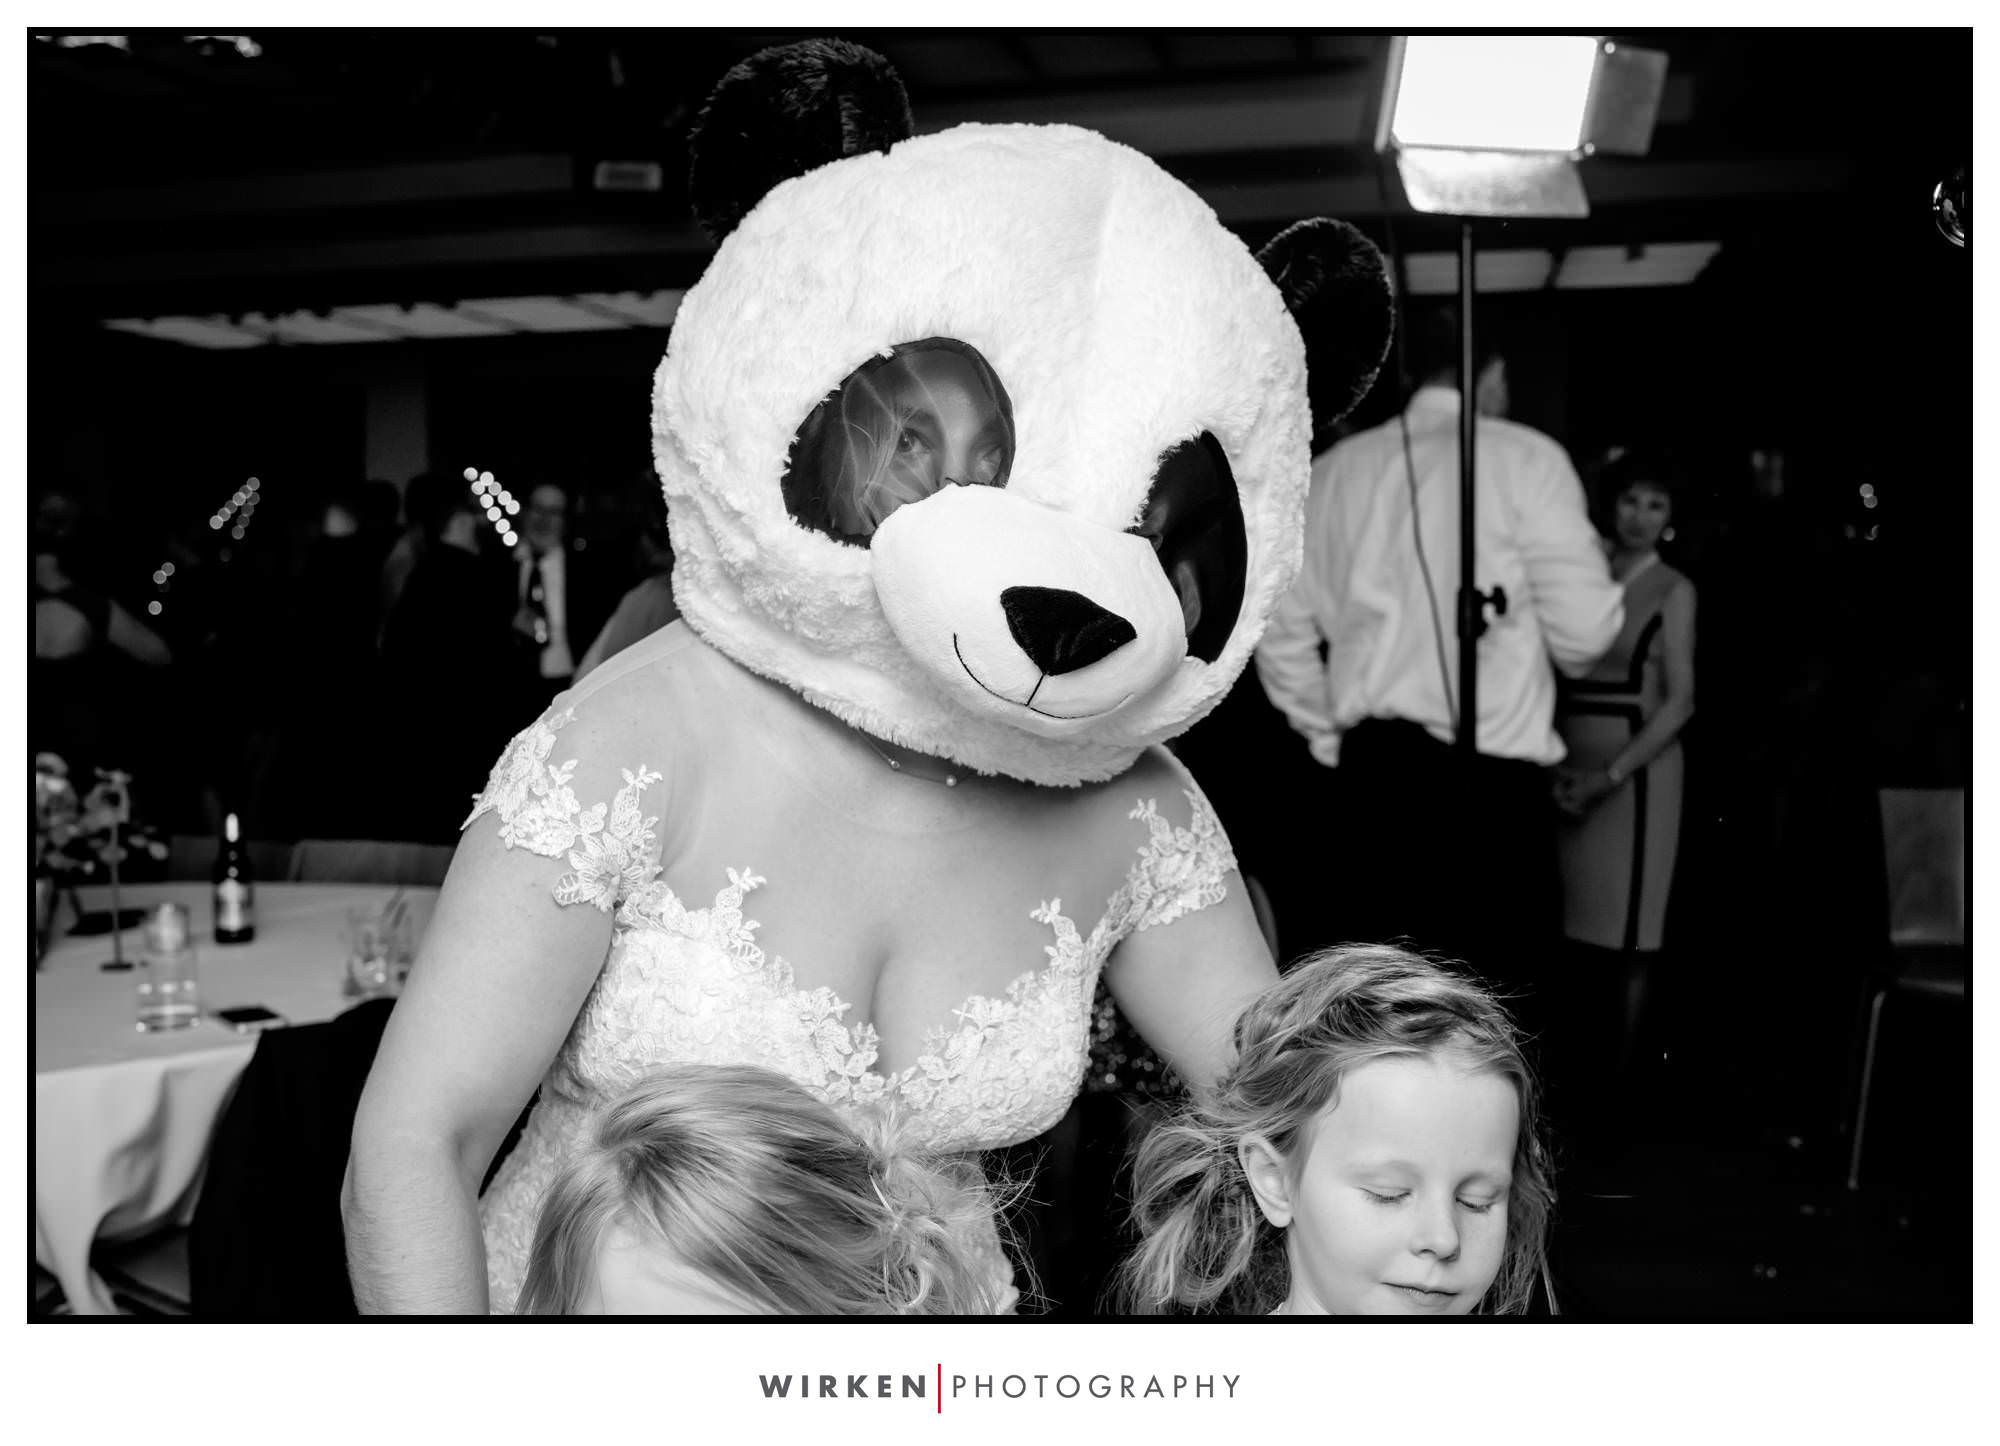 Leah wears a Panda mask at her Gallery event Center wedding reception